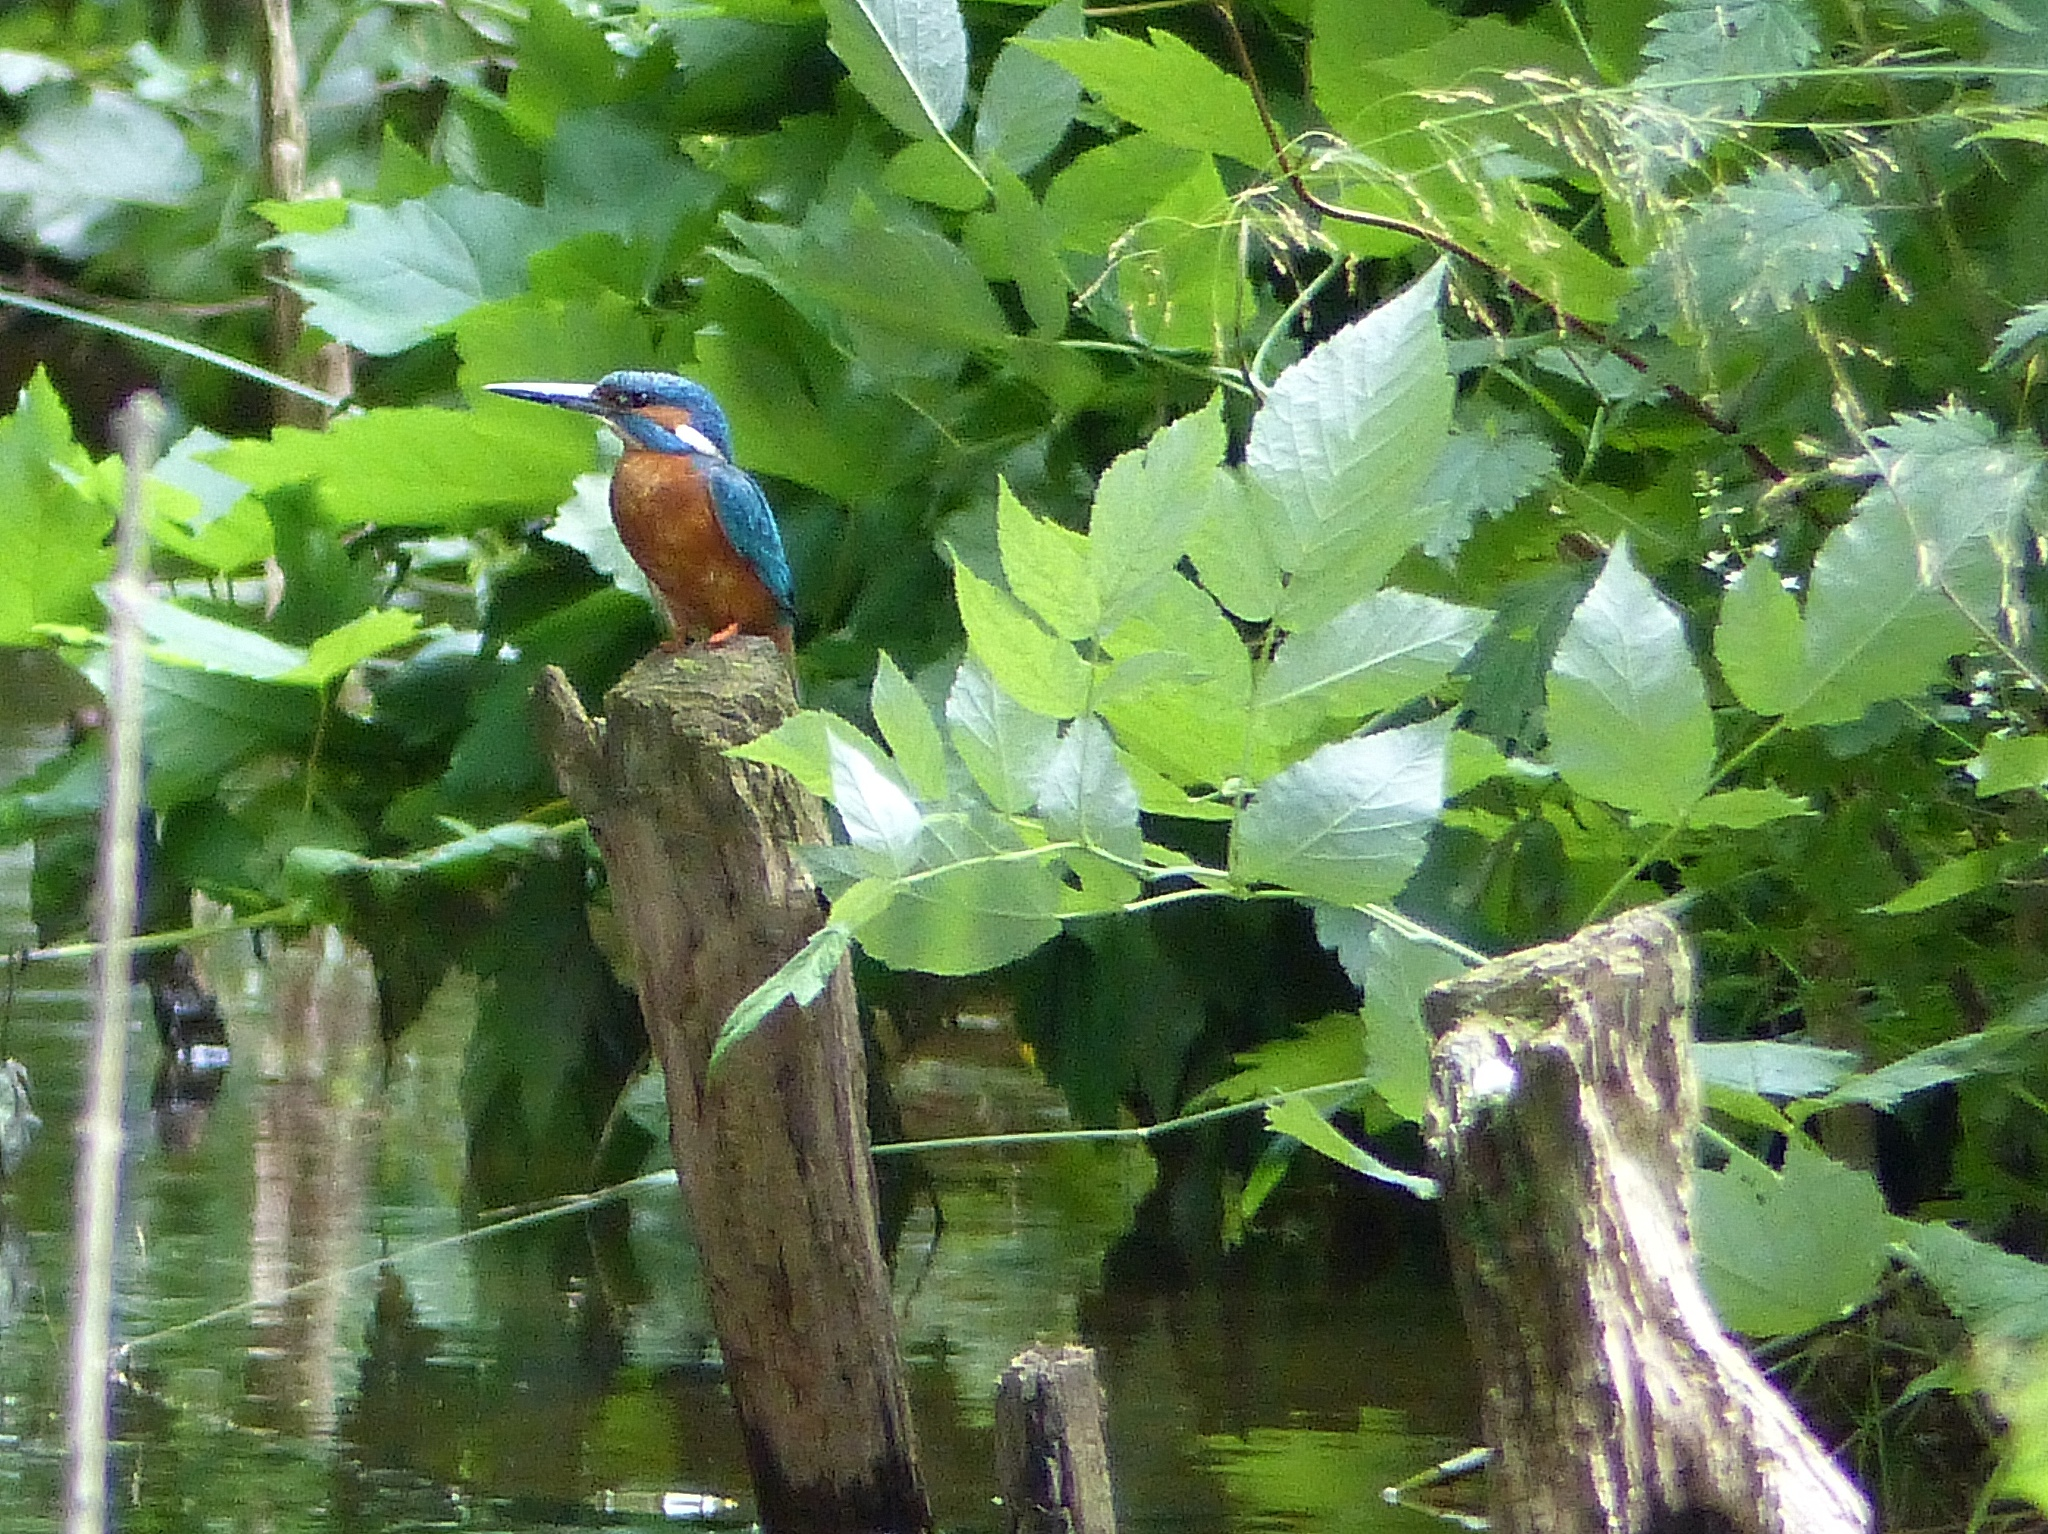 Kingfisher by Lars M.